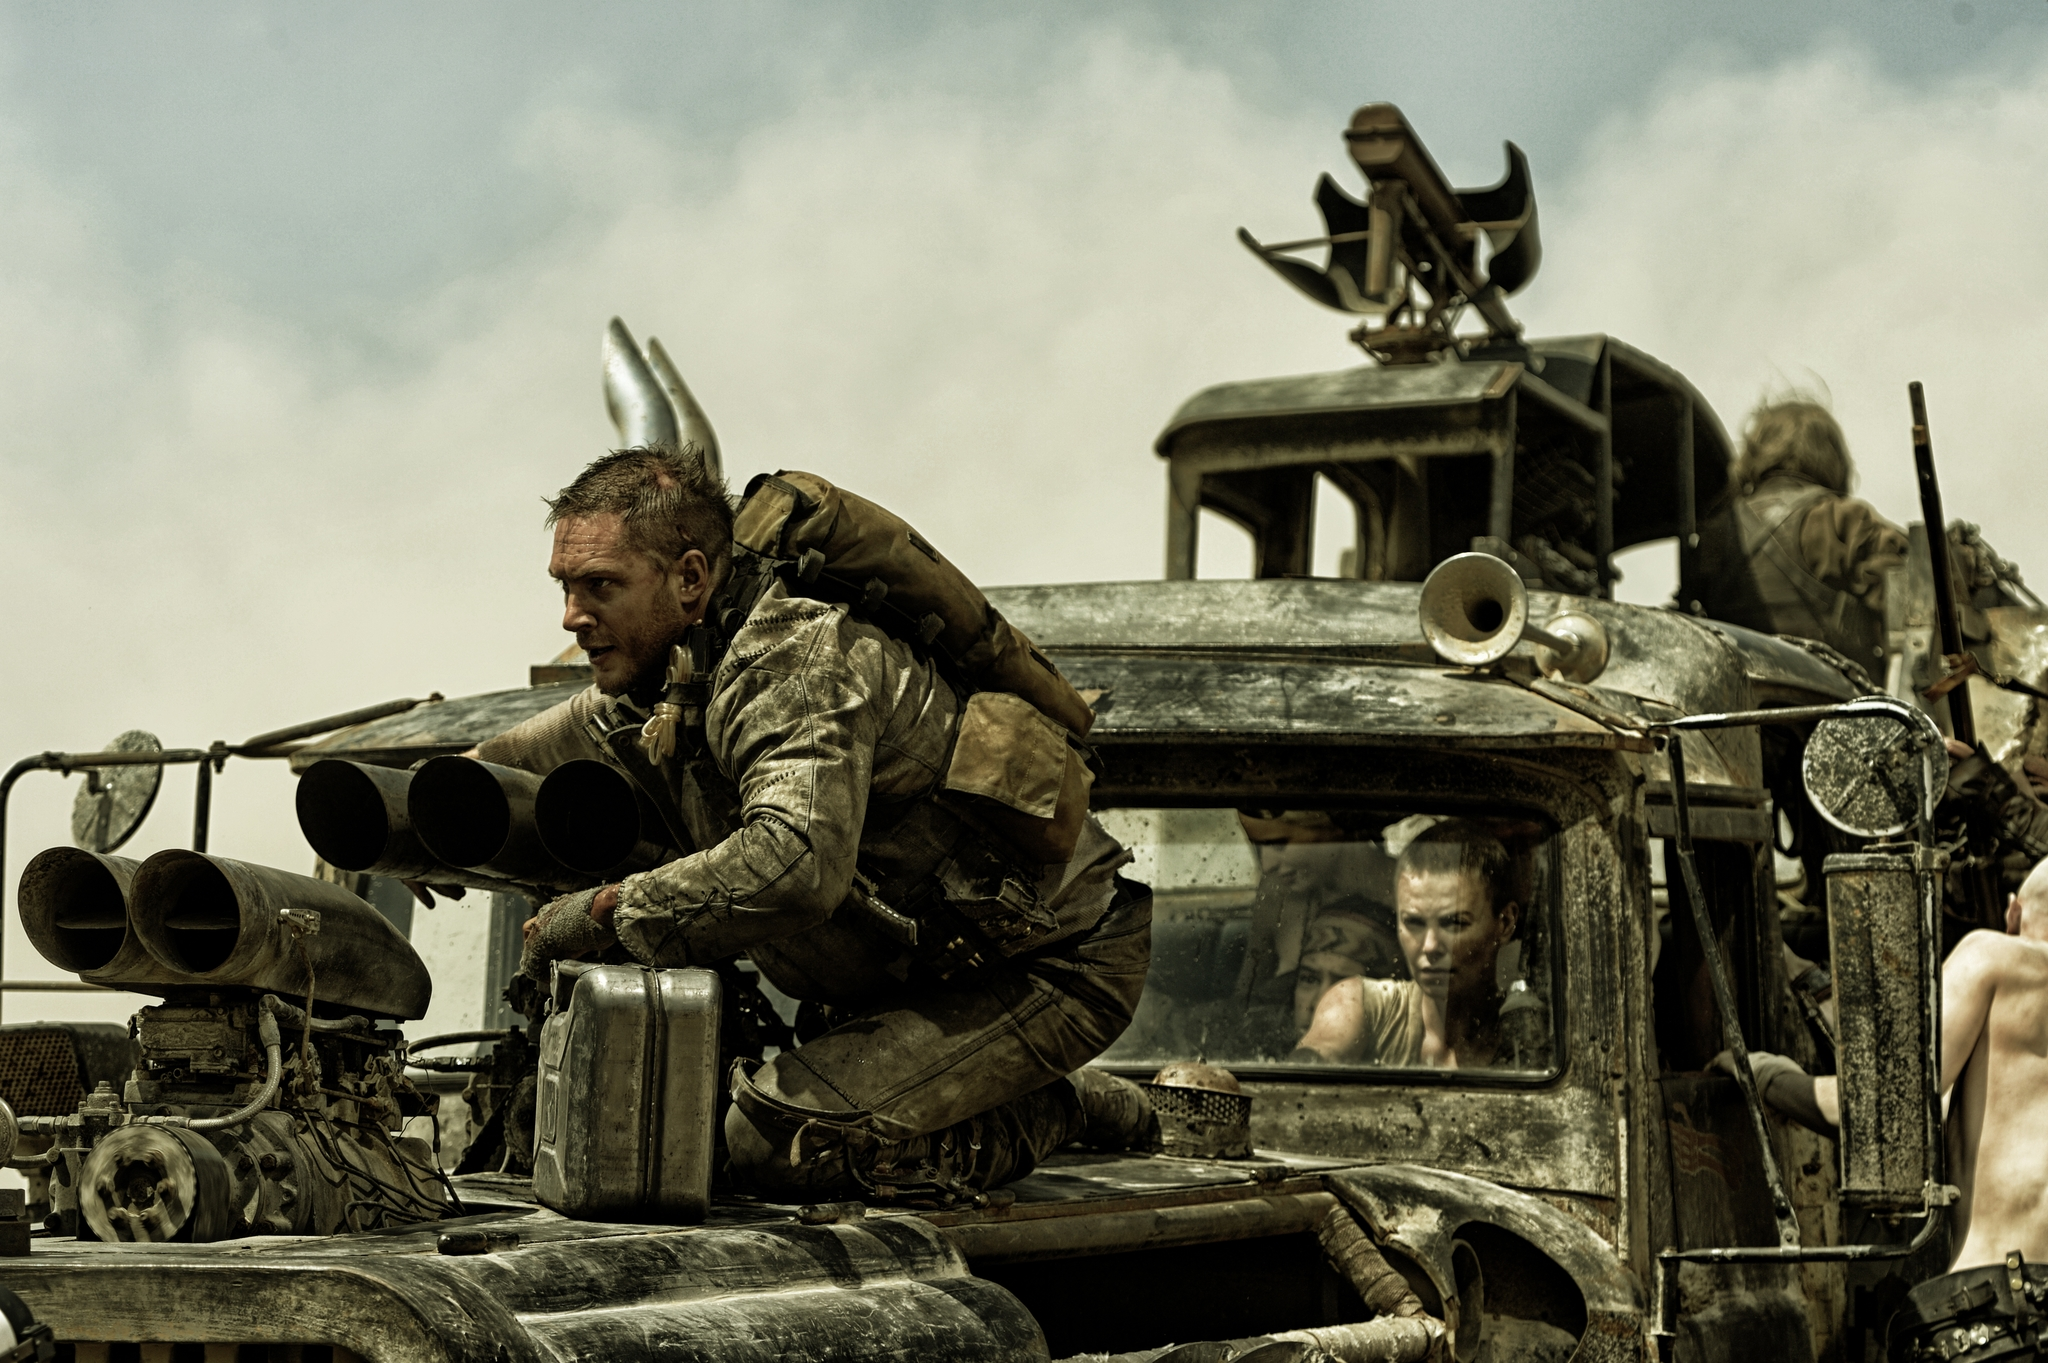 Charlize Theron and Tom Hardy in Mad Max: Fury Road (2015)